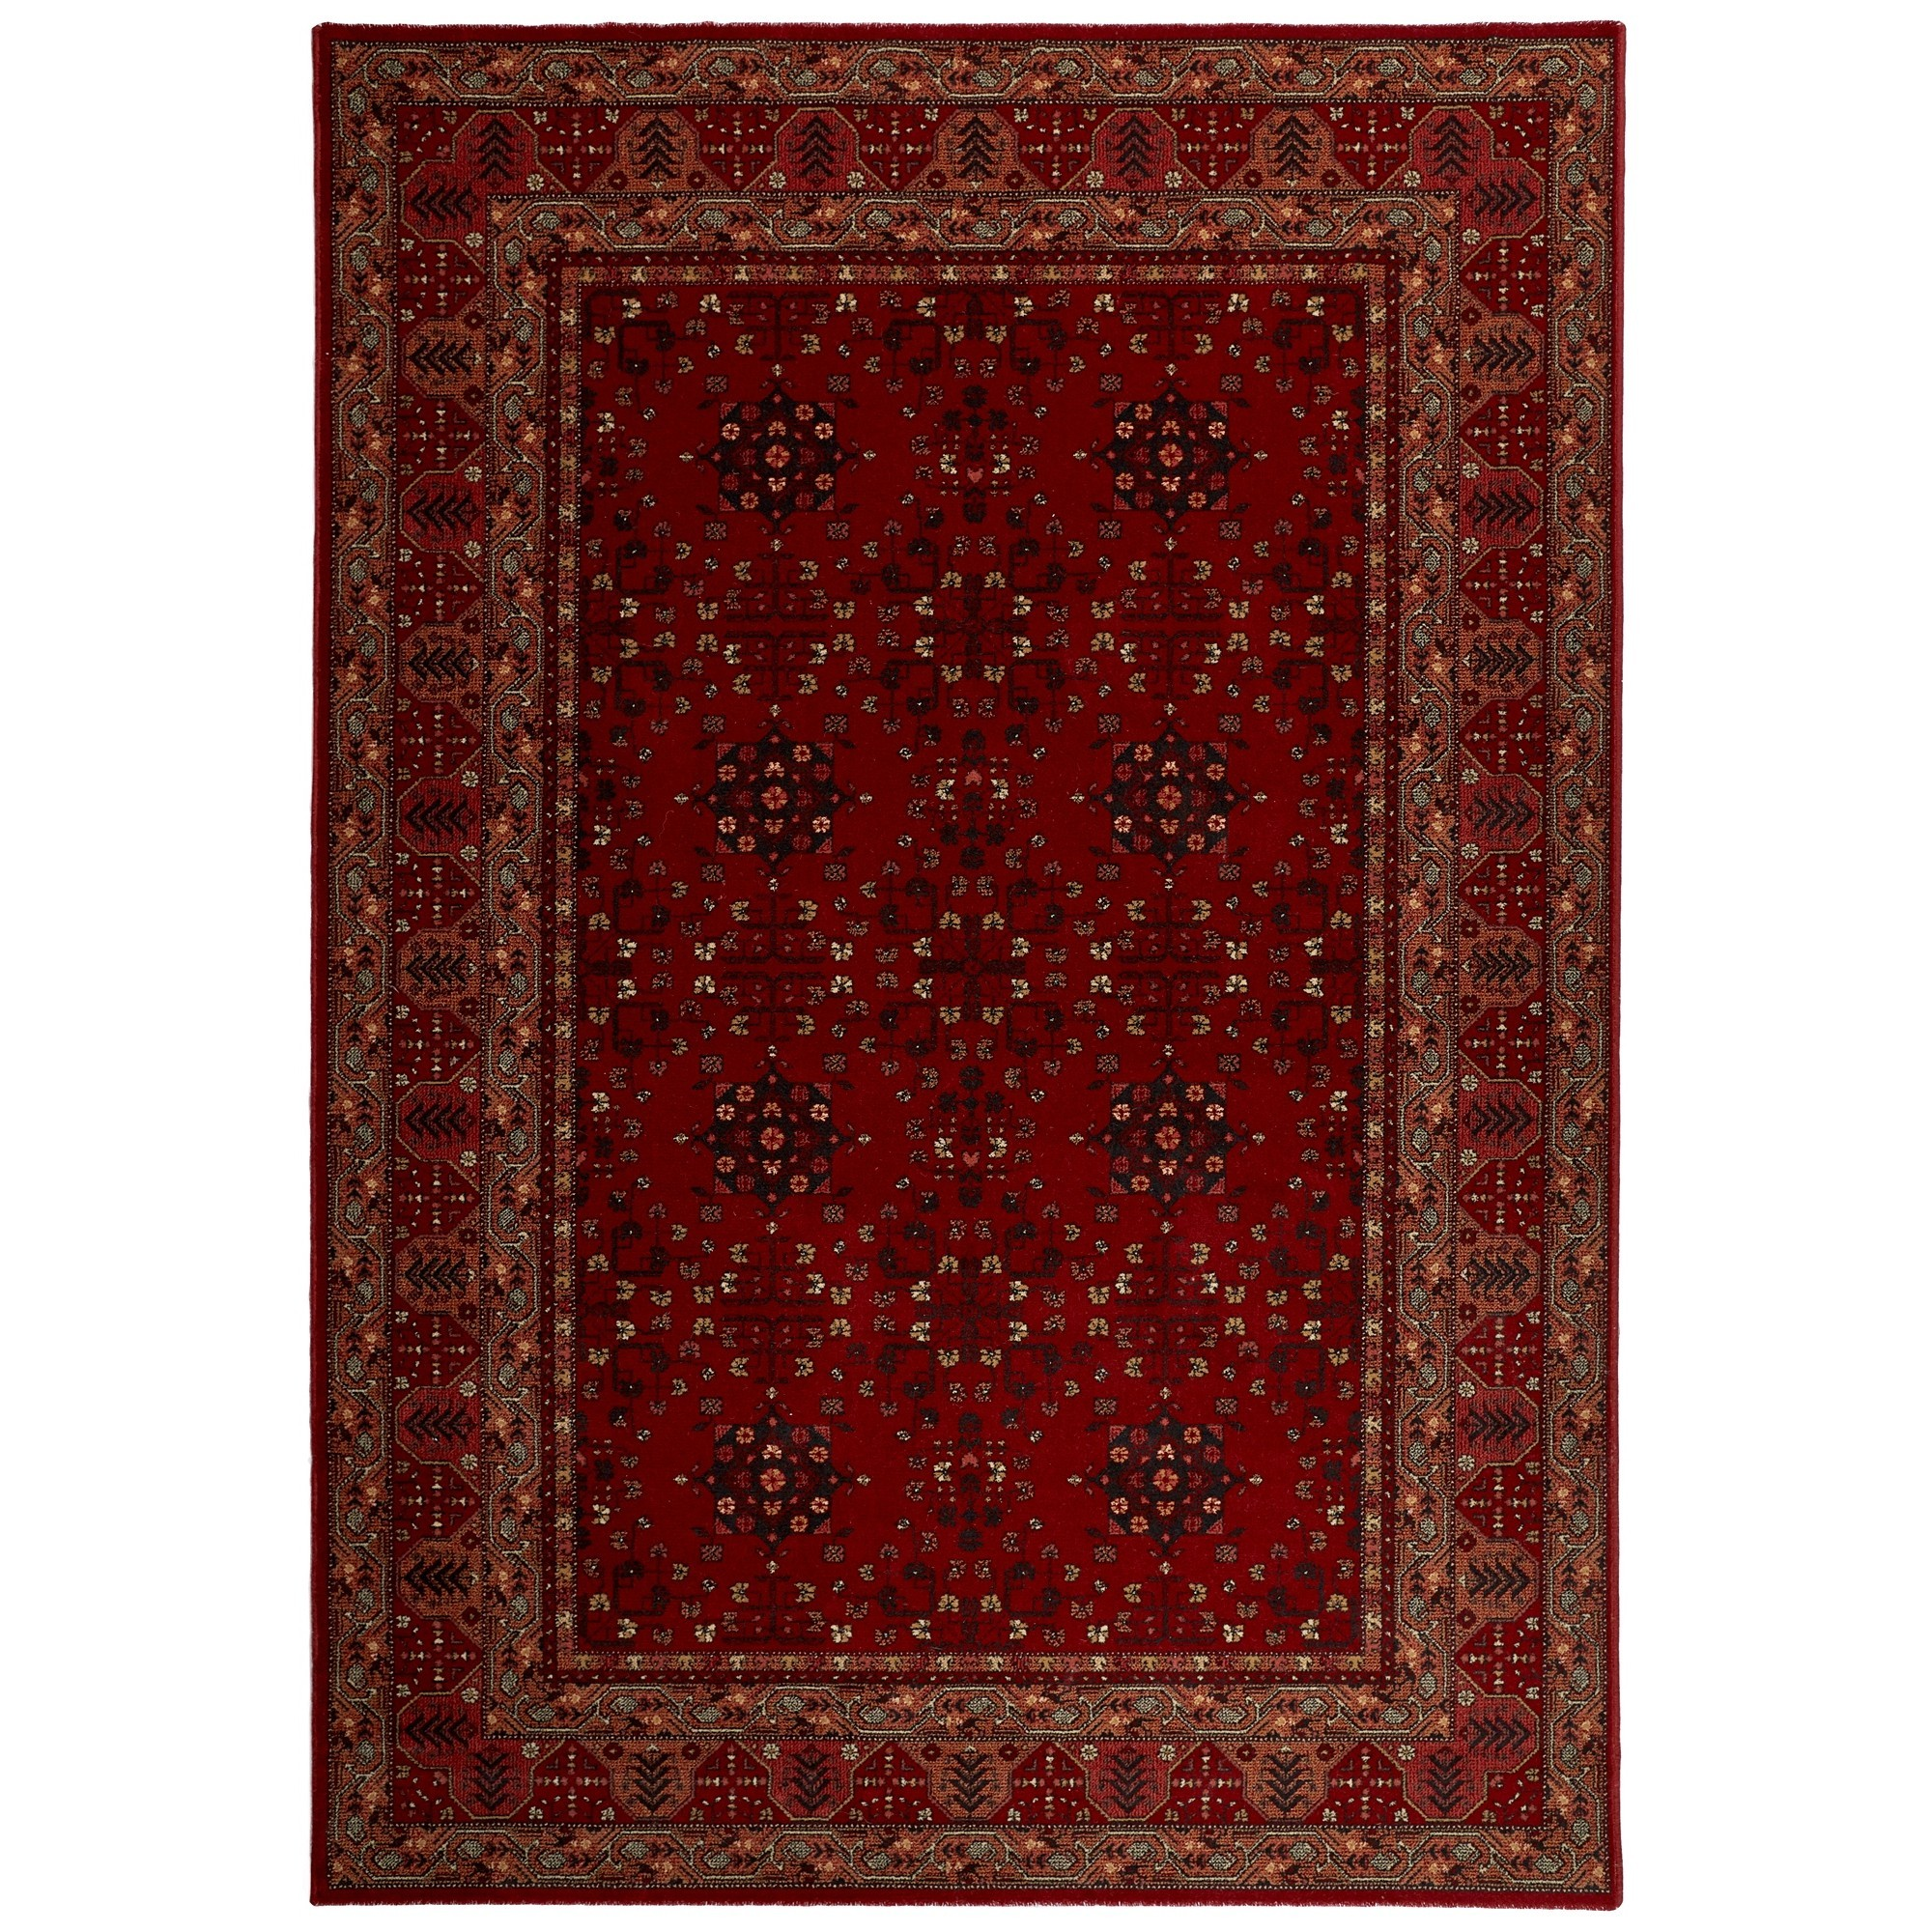 Royal Afghan New Zealand Wool Oriental Rug, 390x280cm